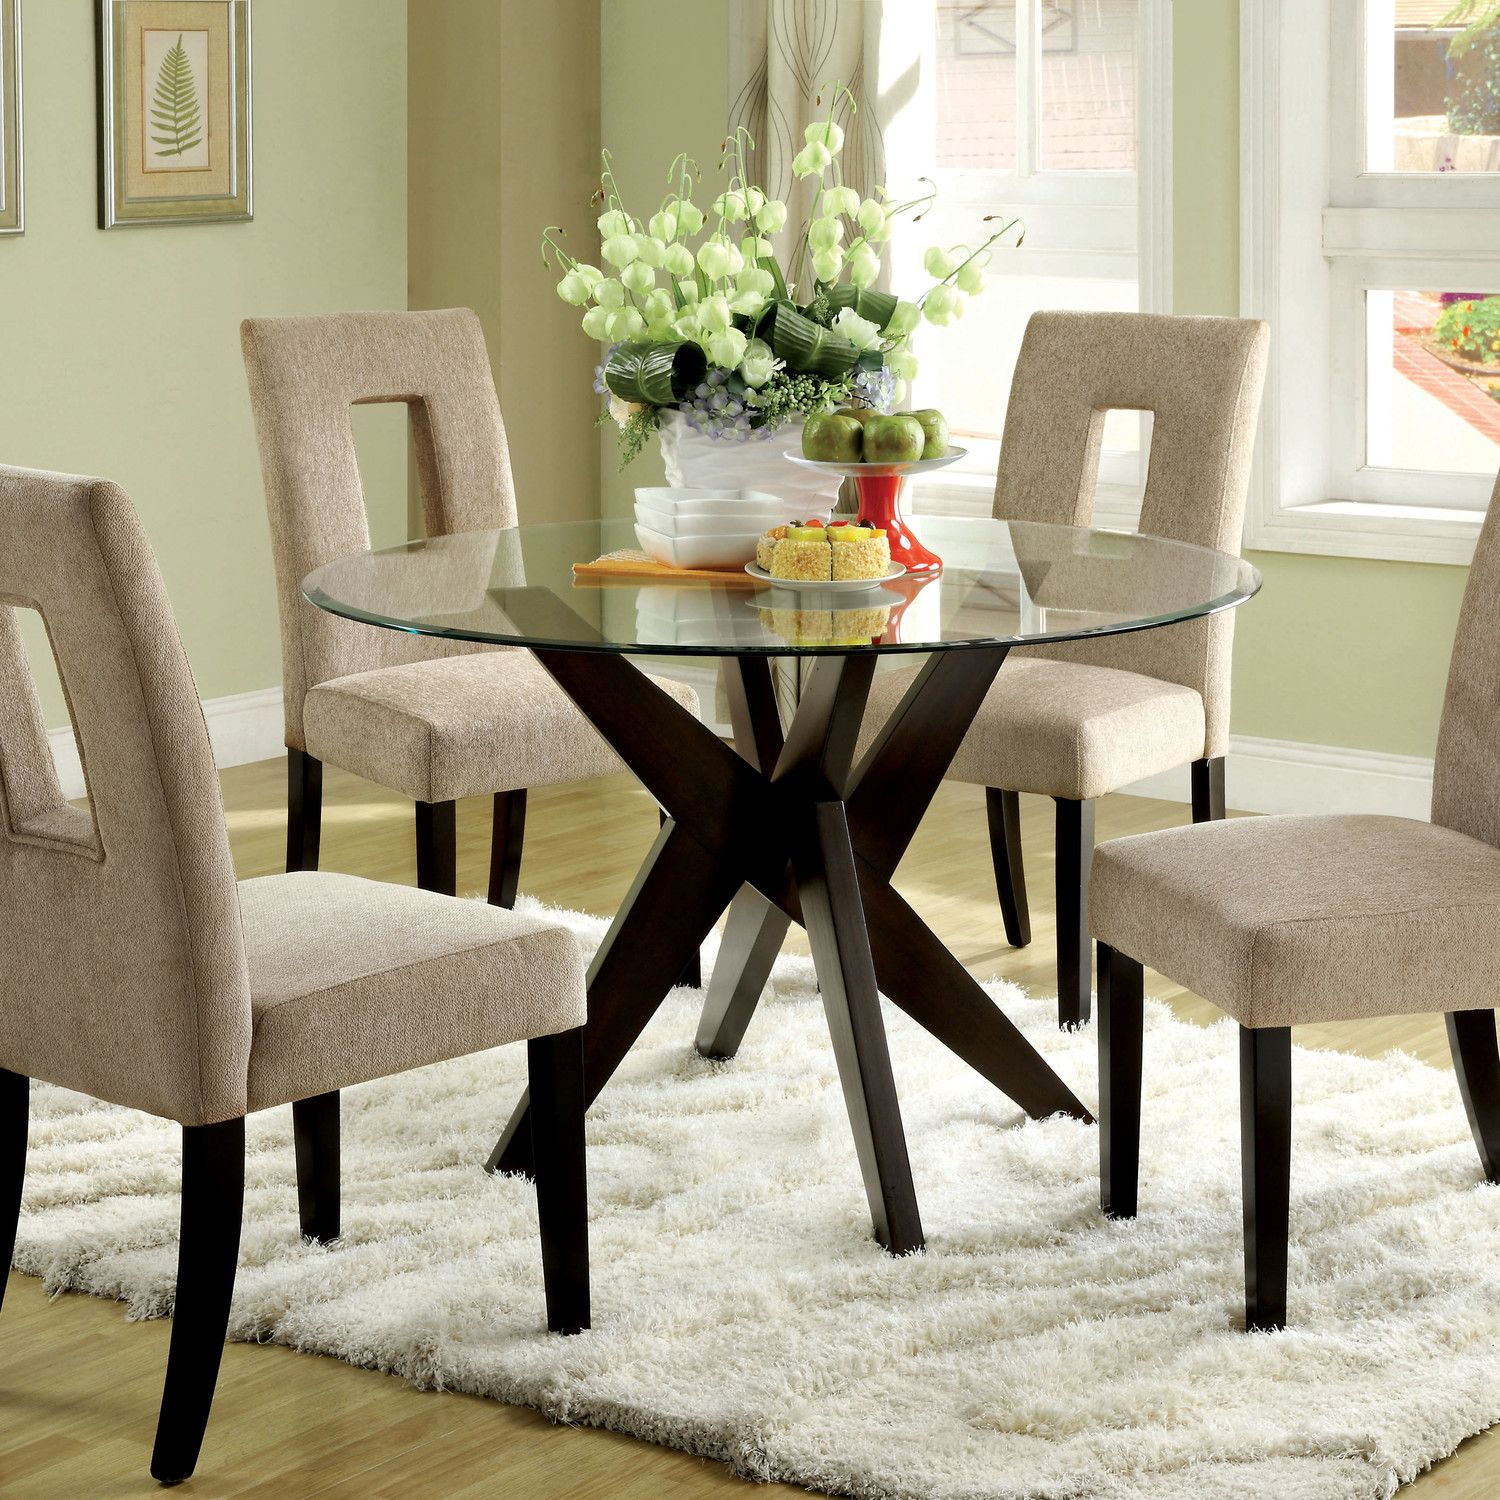 All Hokku Designs   Glass dining room table, Glass round dining ...